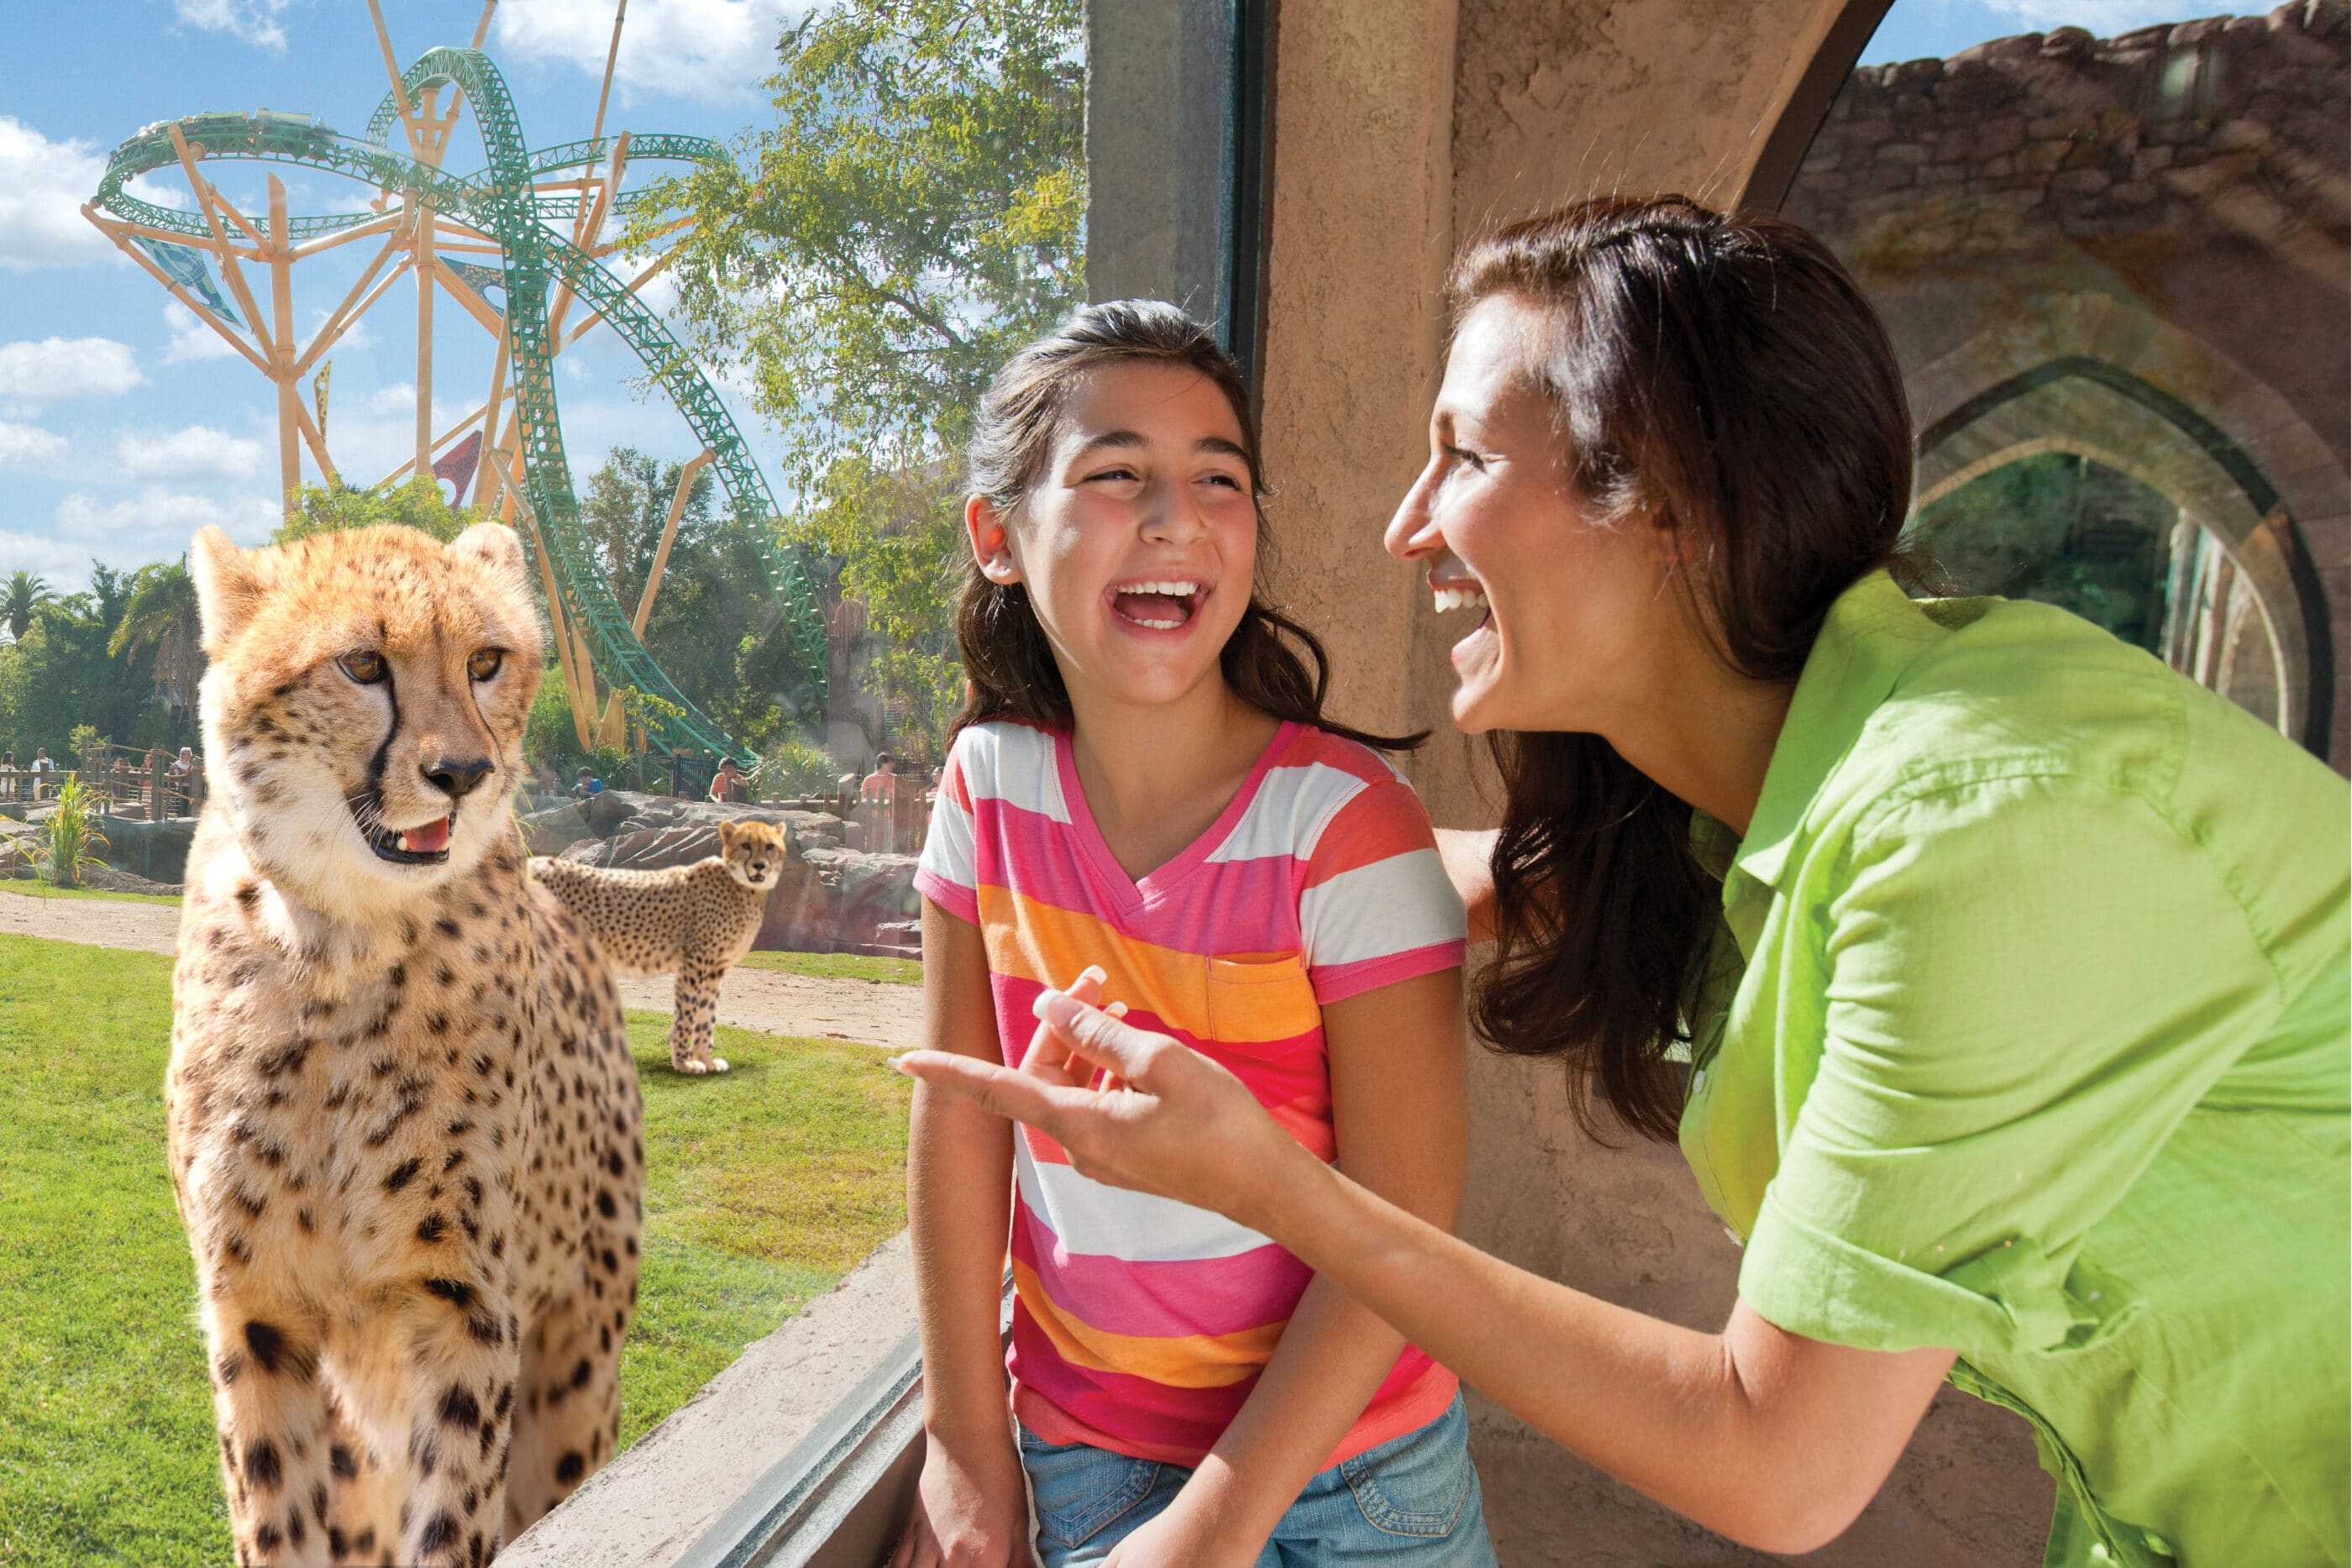 An adult and girl look at a cheetah through glass at Busch Gardens Tampa Bay.